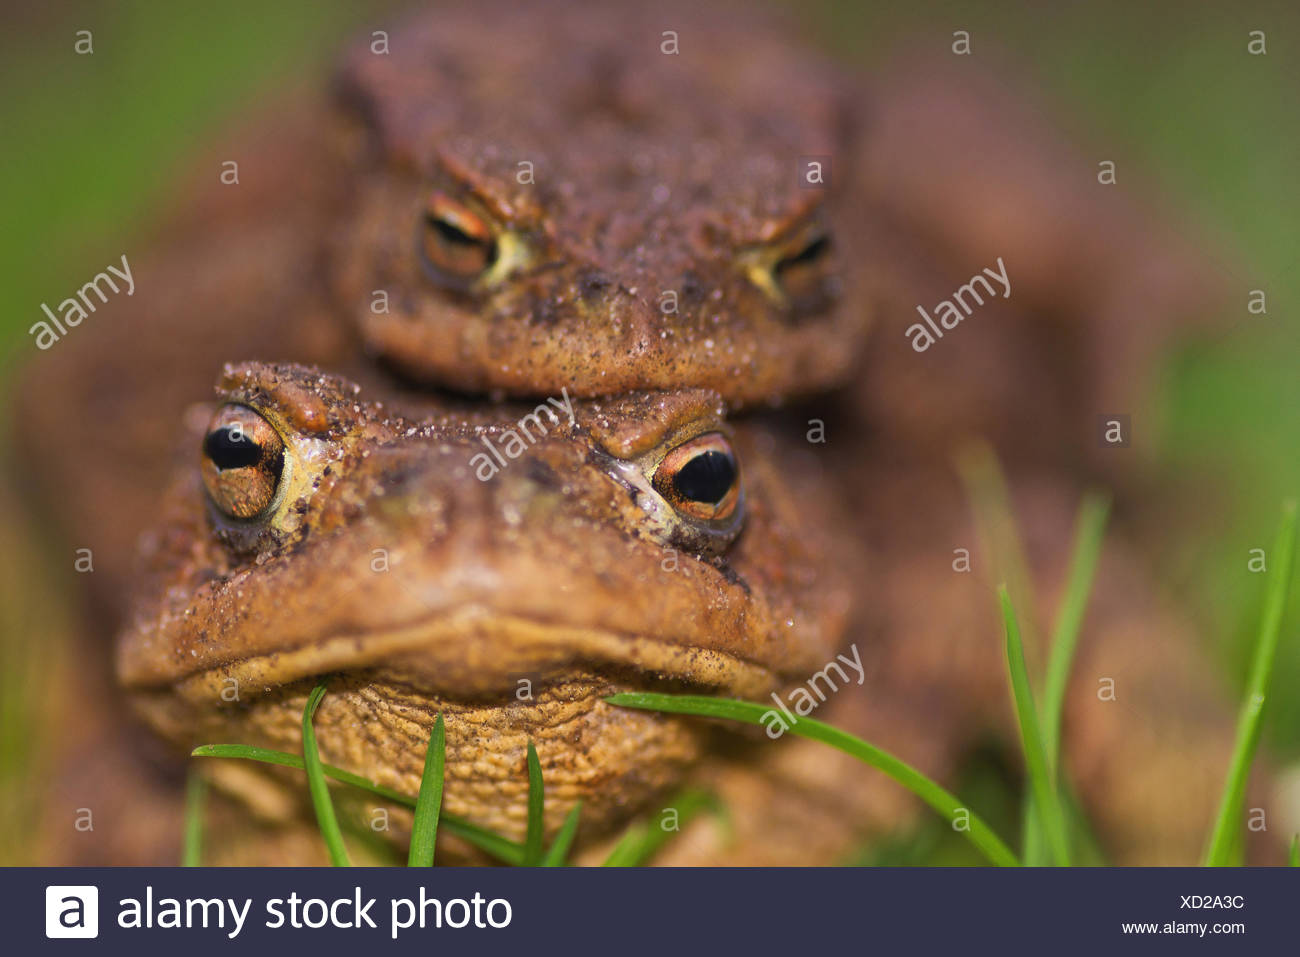 Toads, mating, migration, close-up, - Stock Image